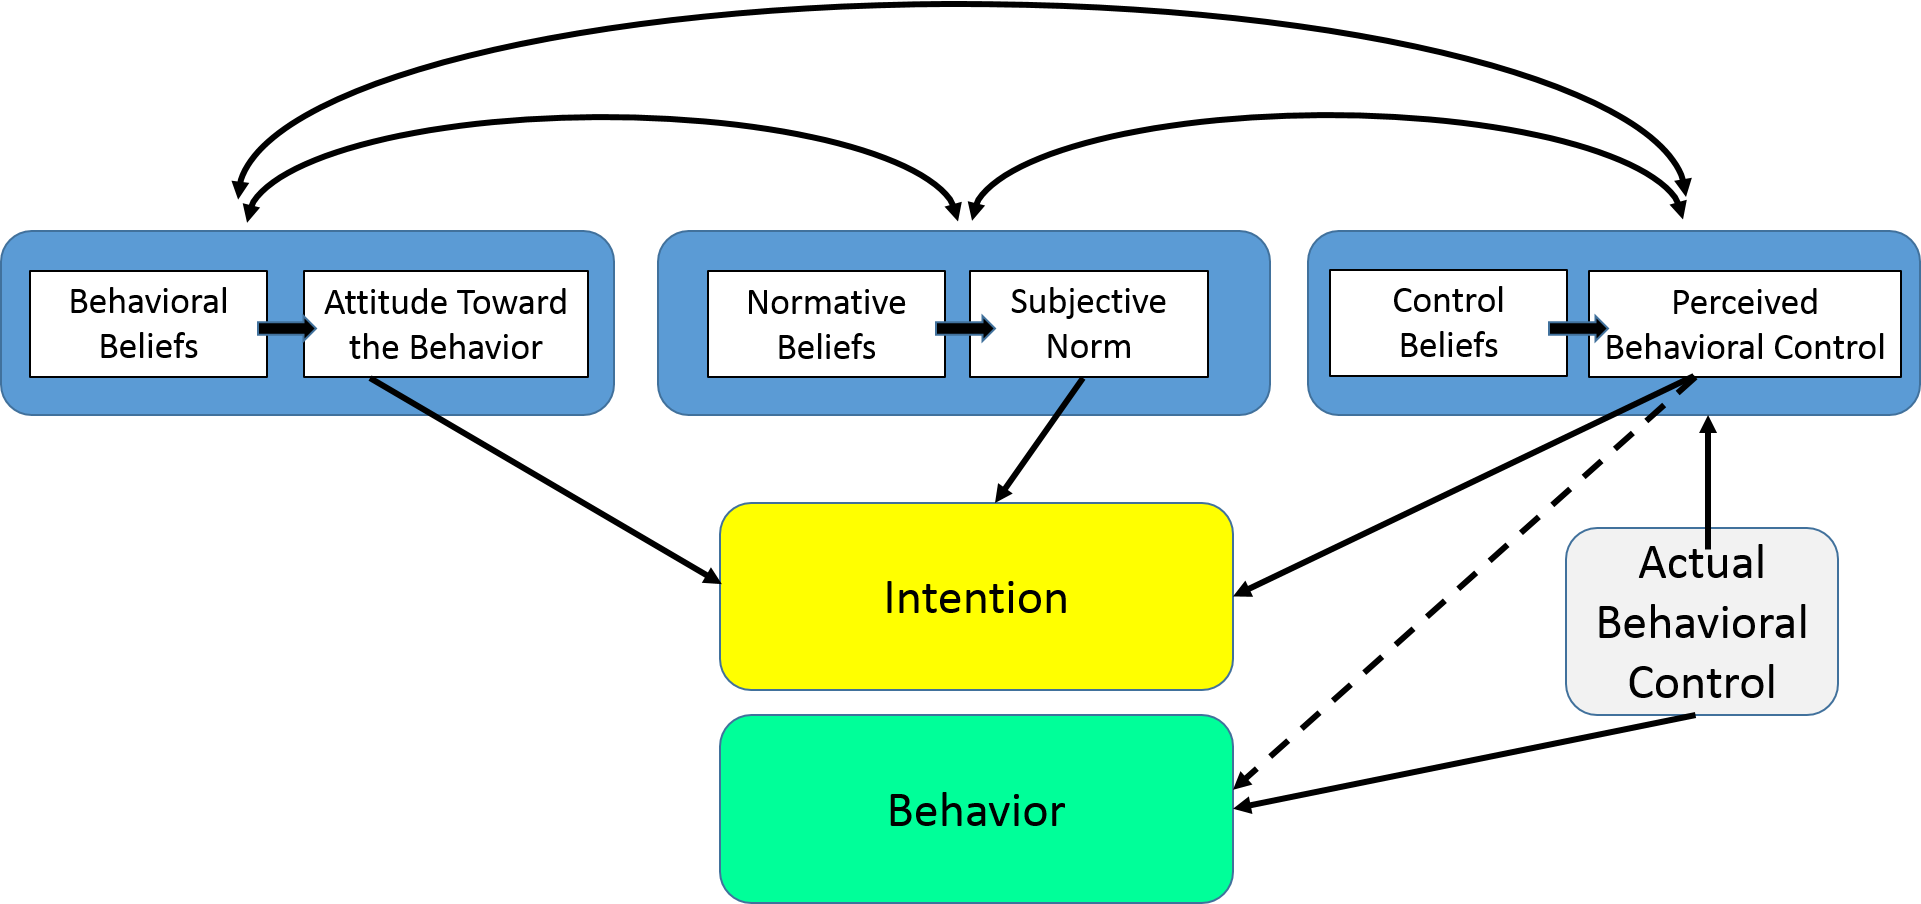 strength and limitation of bandura Social learning theory (bandura) another major strength for social learning theory is that it can account for differences in aggressive and non-aggressive.